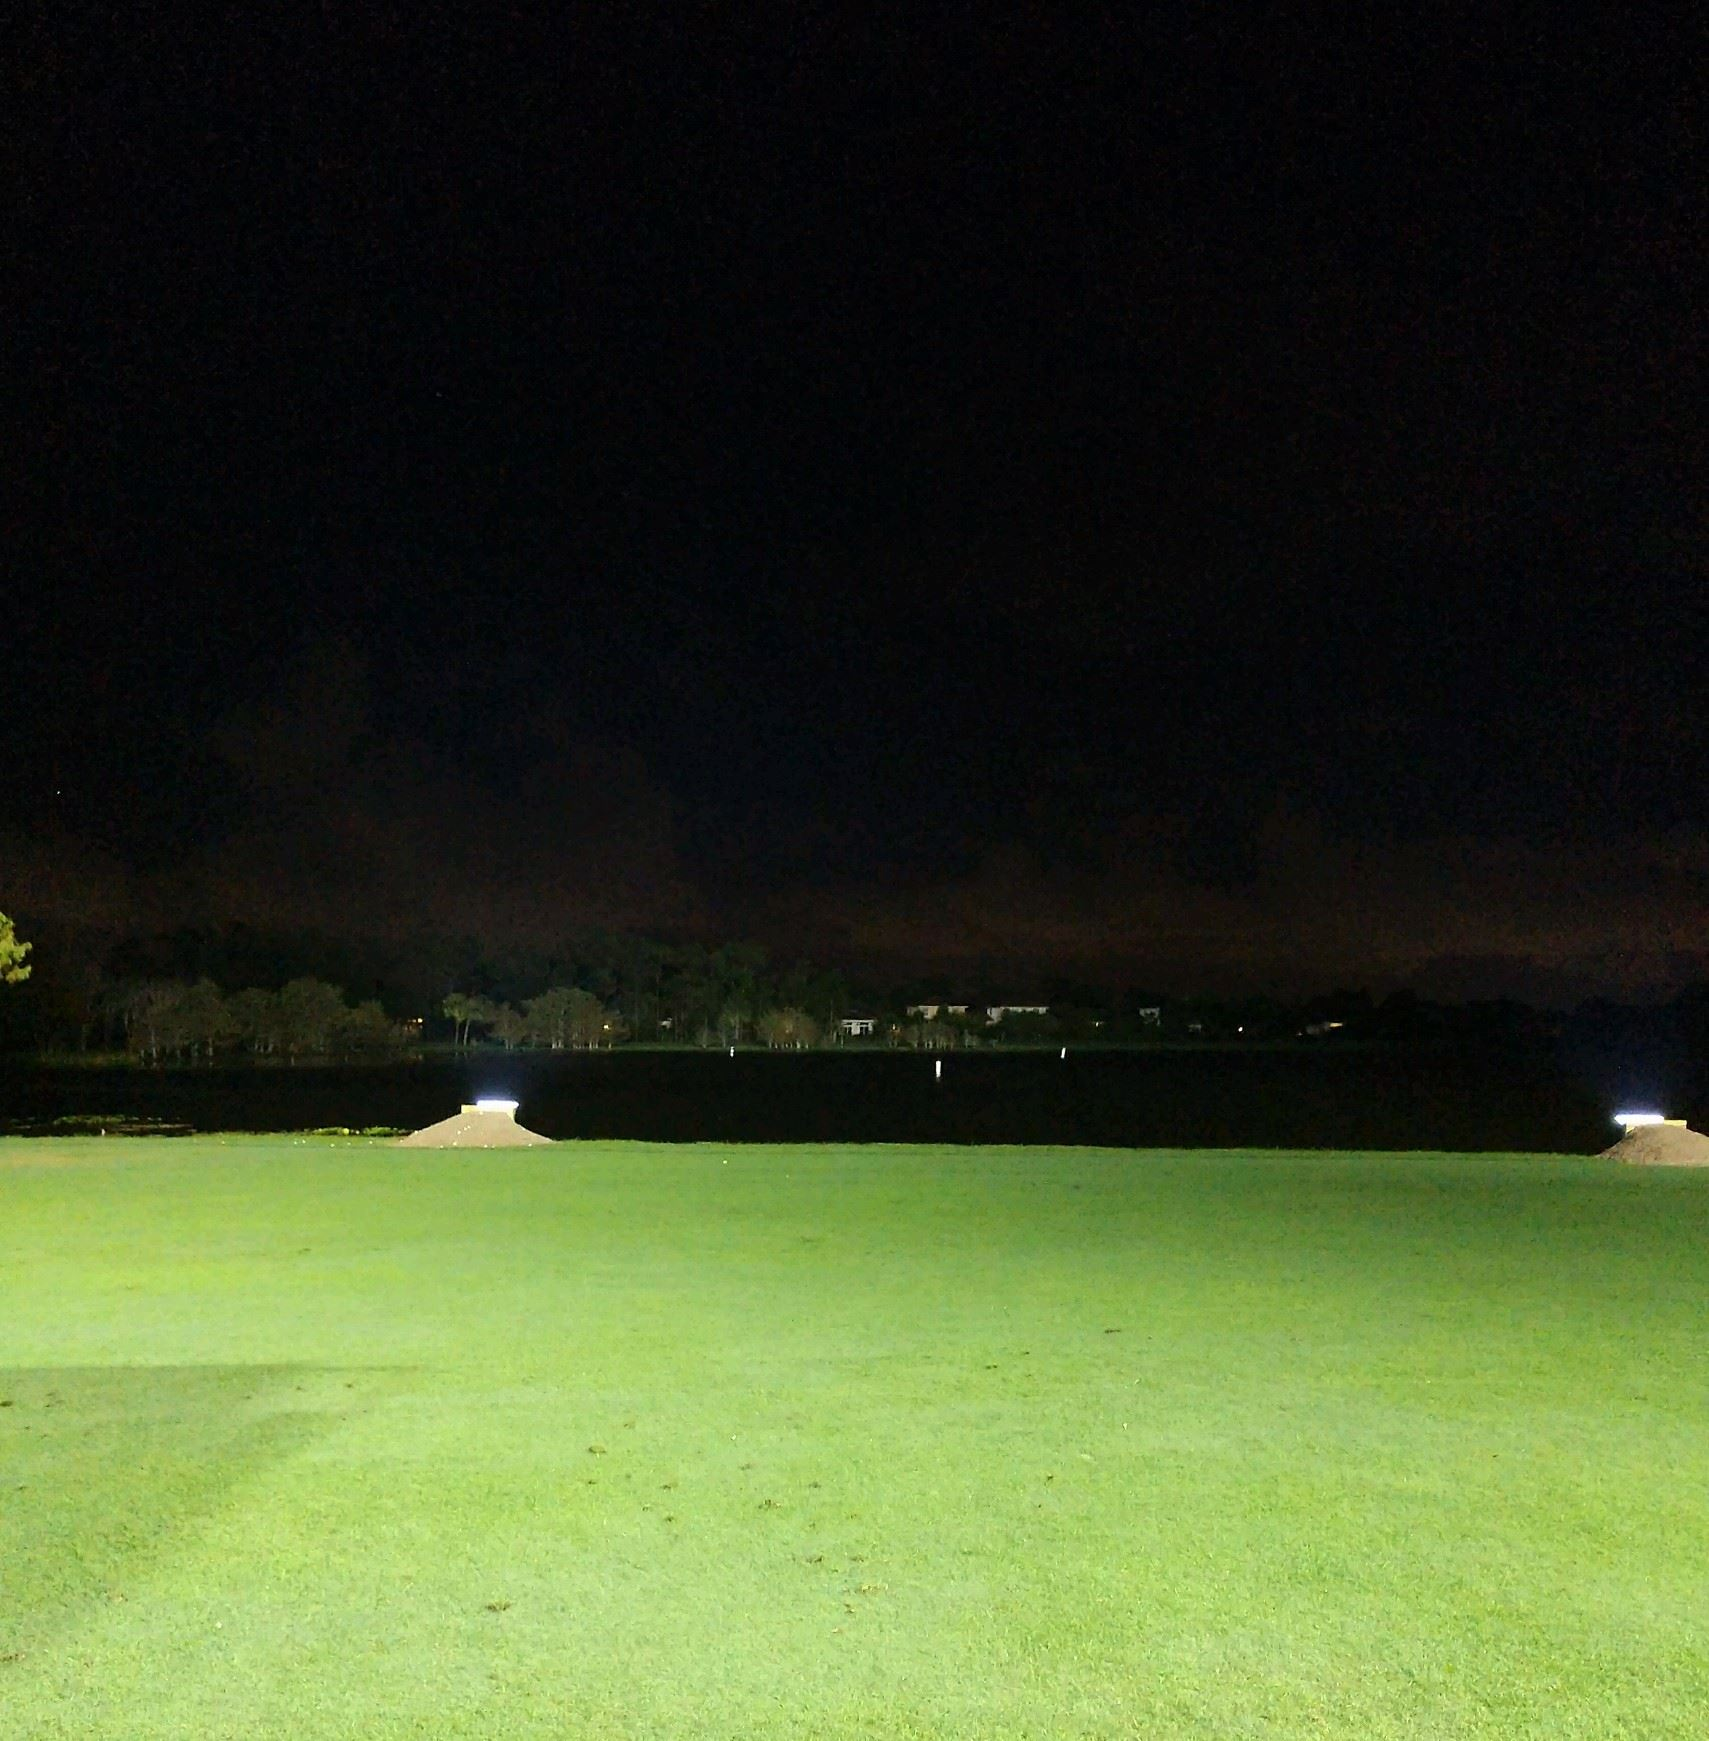 Driving Range Lights